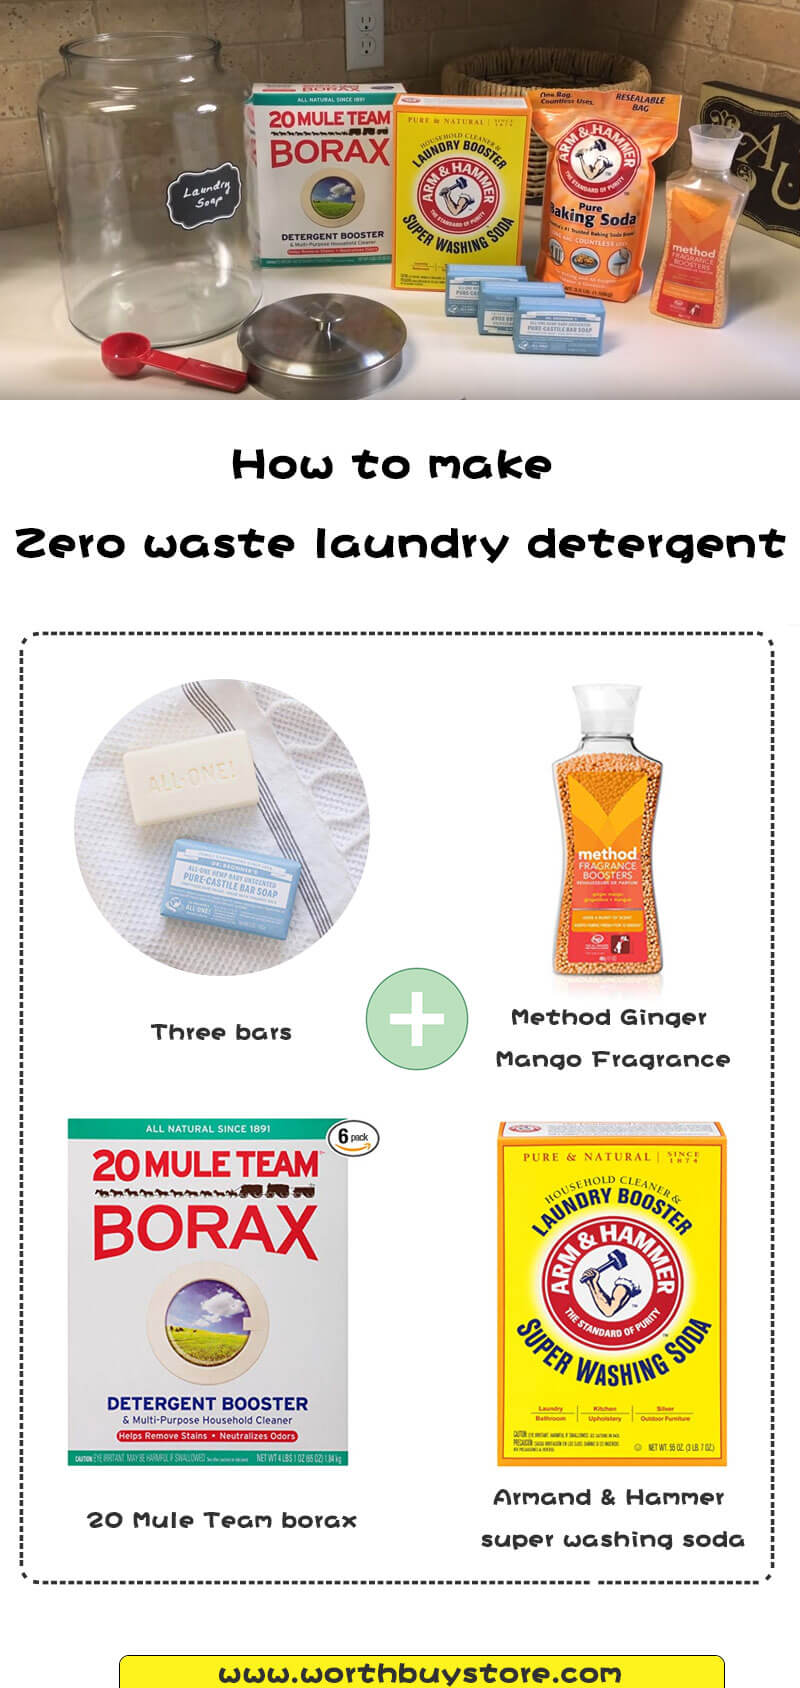 How to make Zero waste laundry detergent